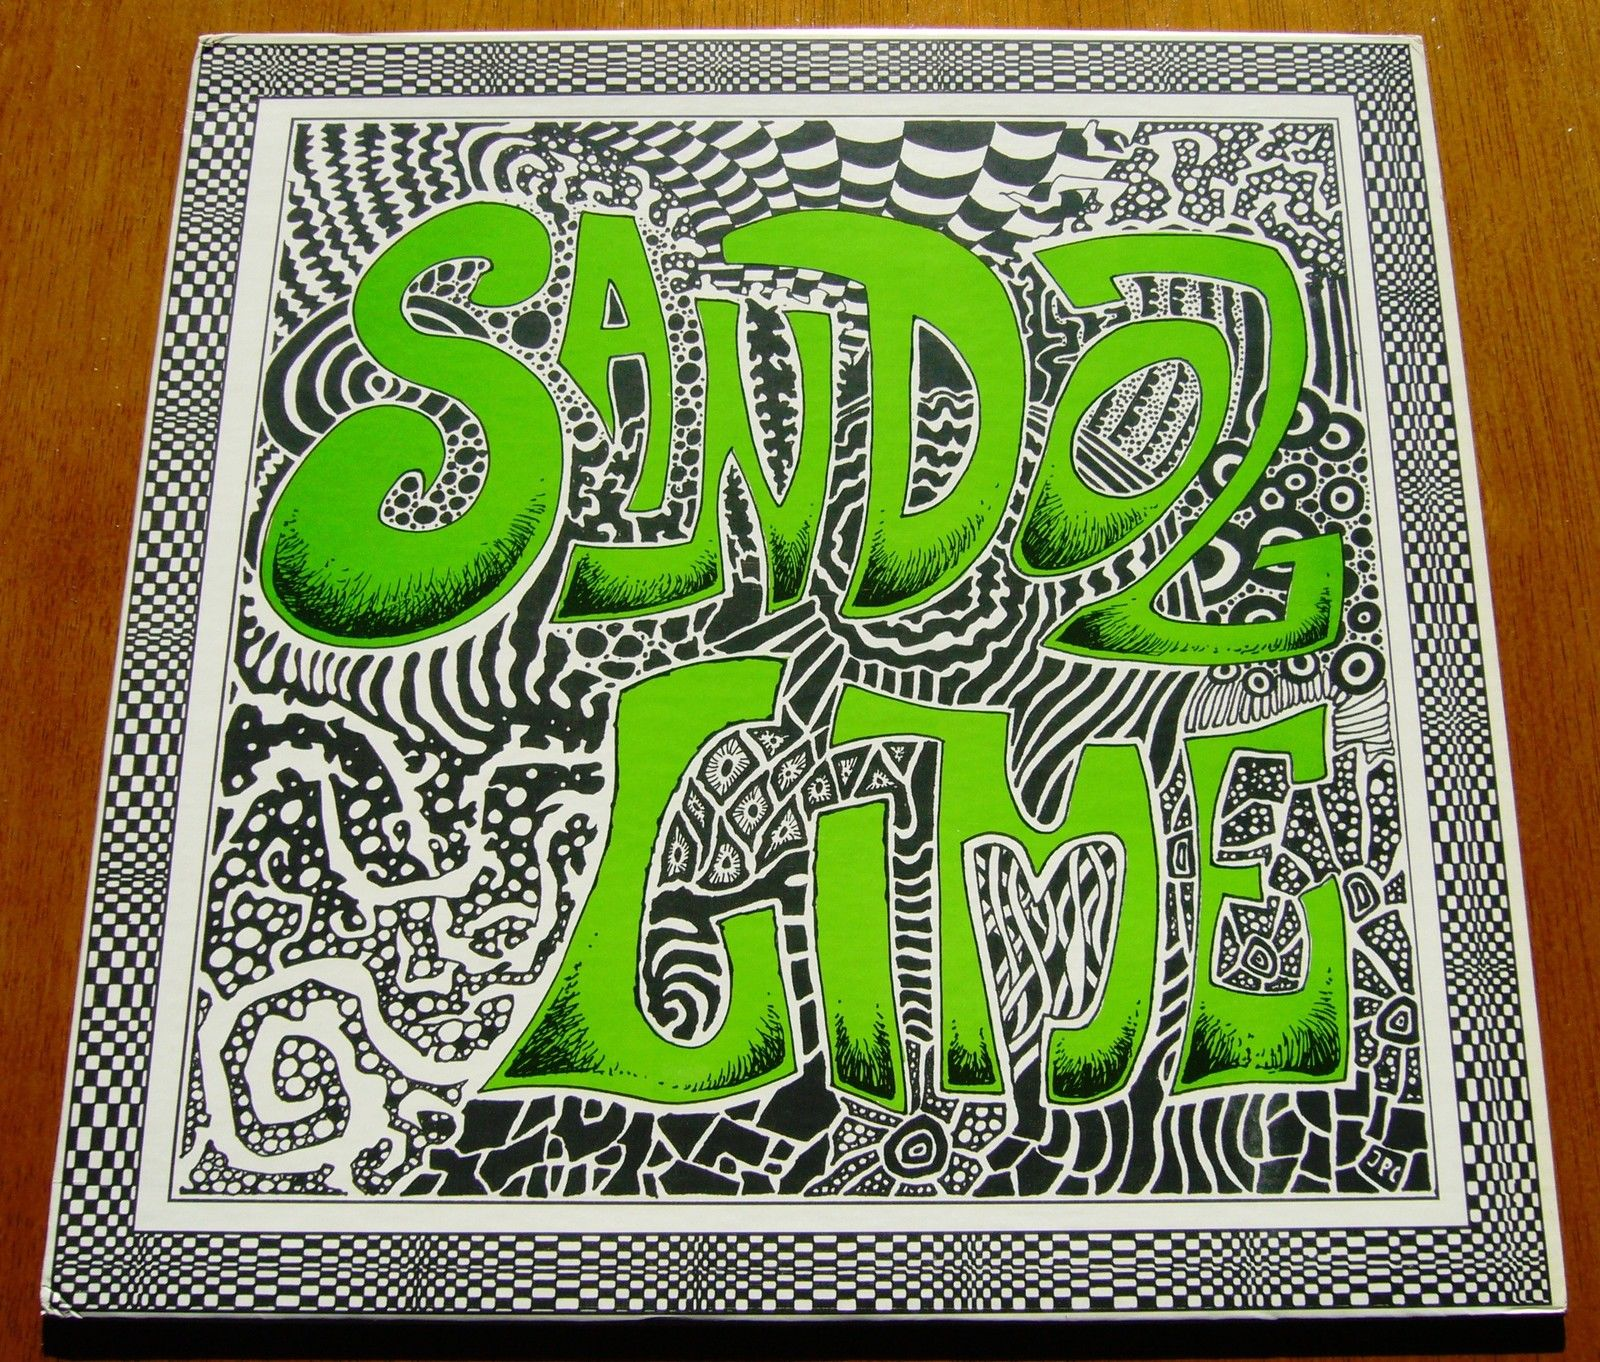 johnkatsmc5 sandoz lime sandoz lime 1992 us psych garage rock